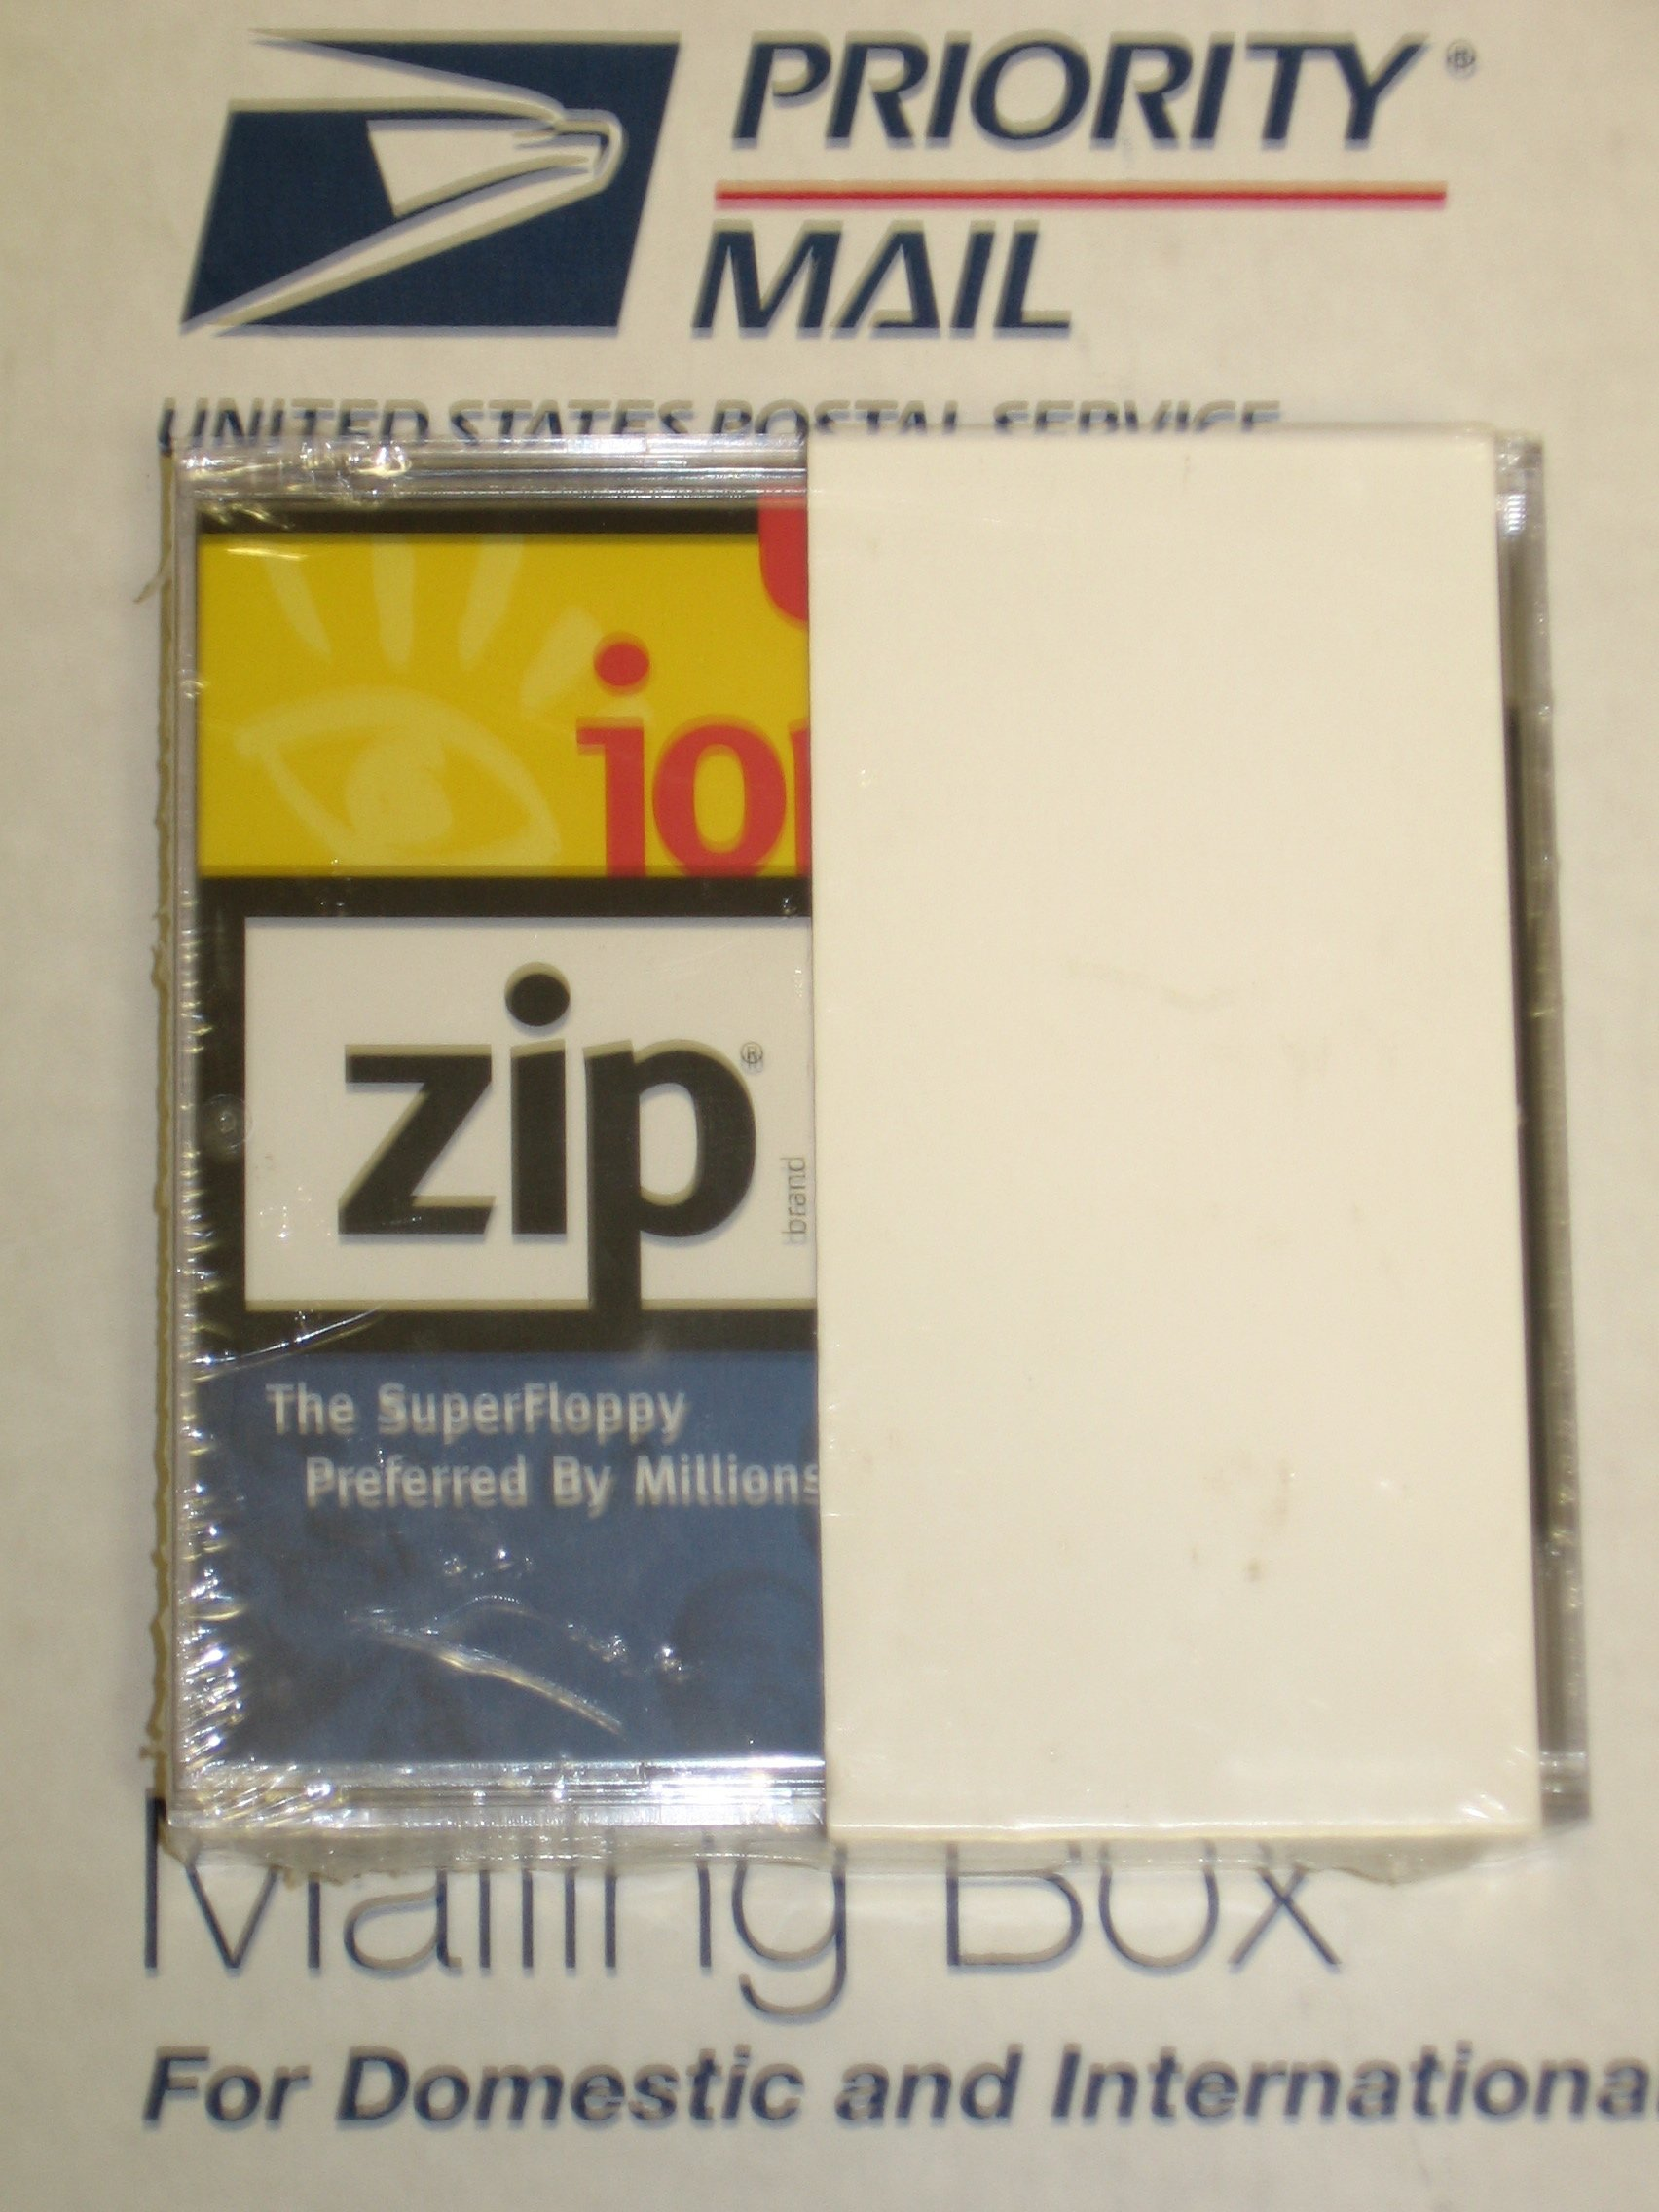 Iomega 2PK ZIP 250MB CLAMSHELL PC/MAC ( 32623 )